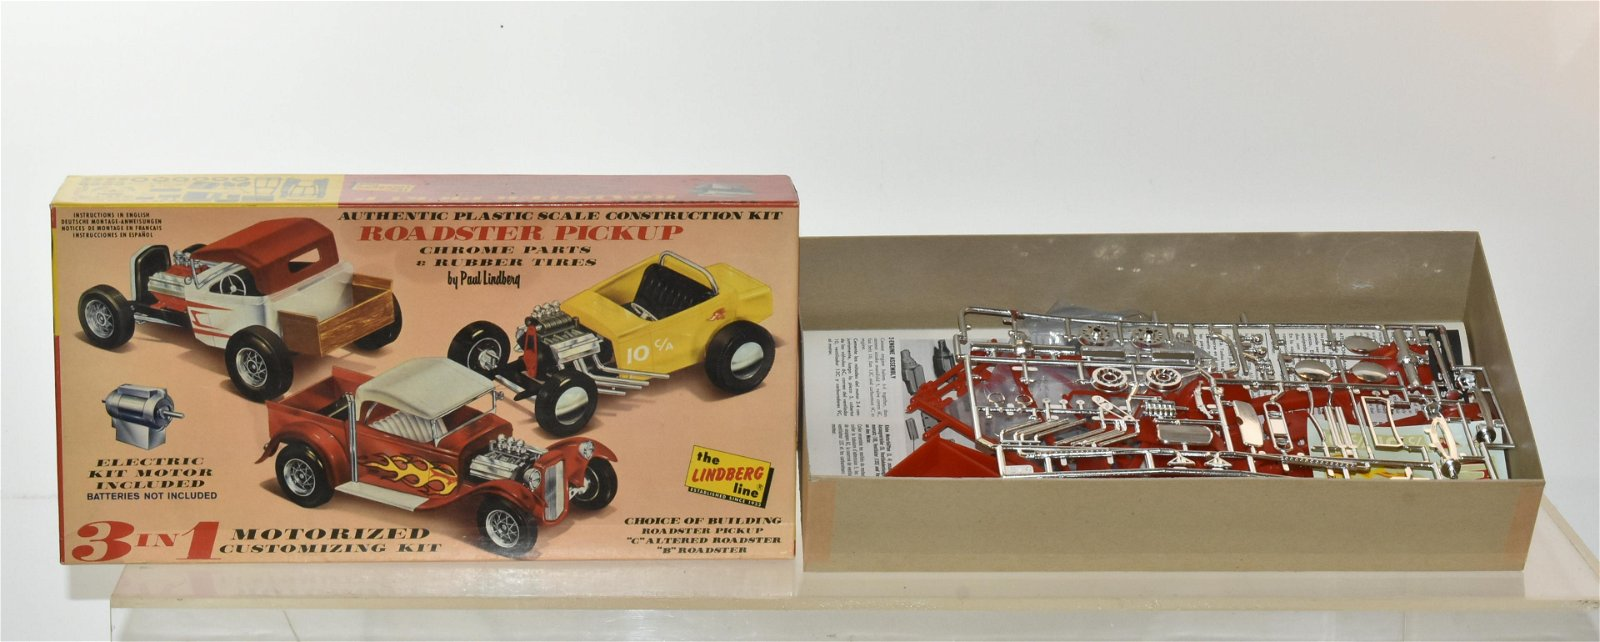 Roadster Electric Motor Model Kit